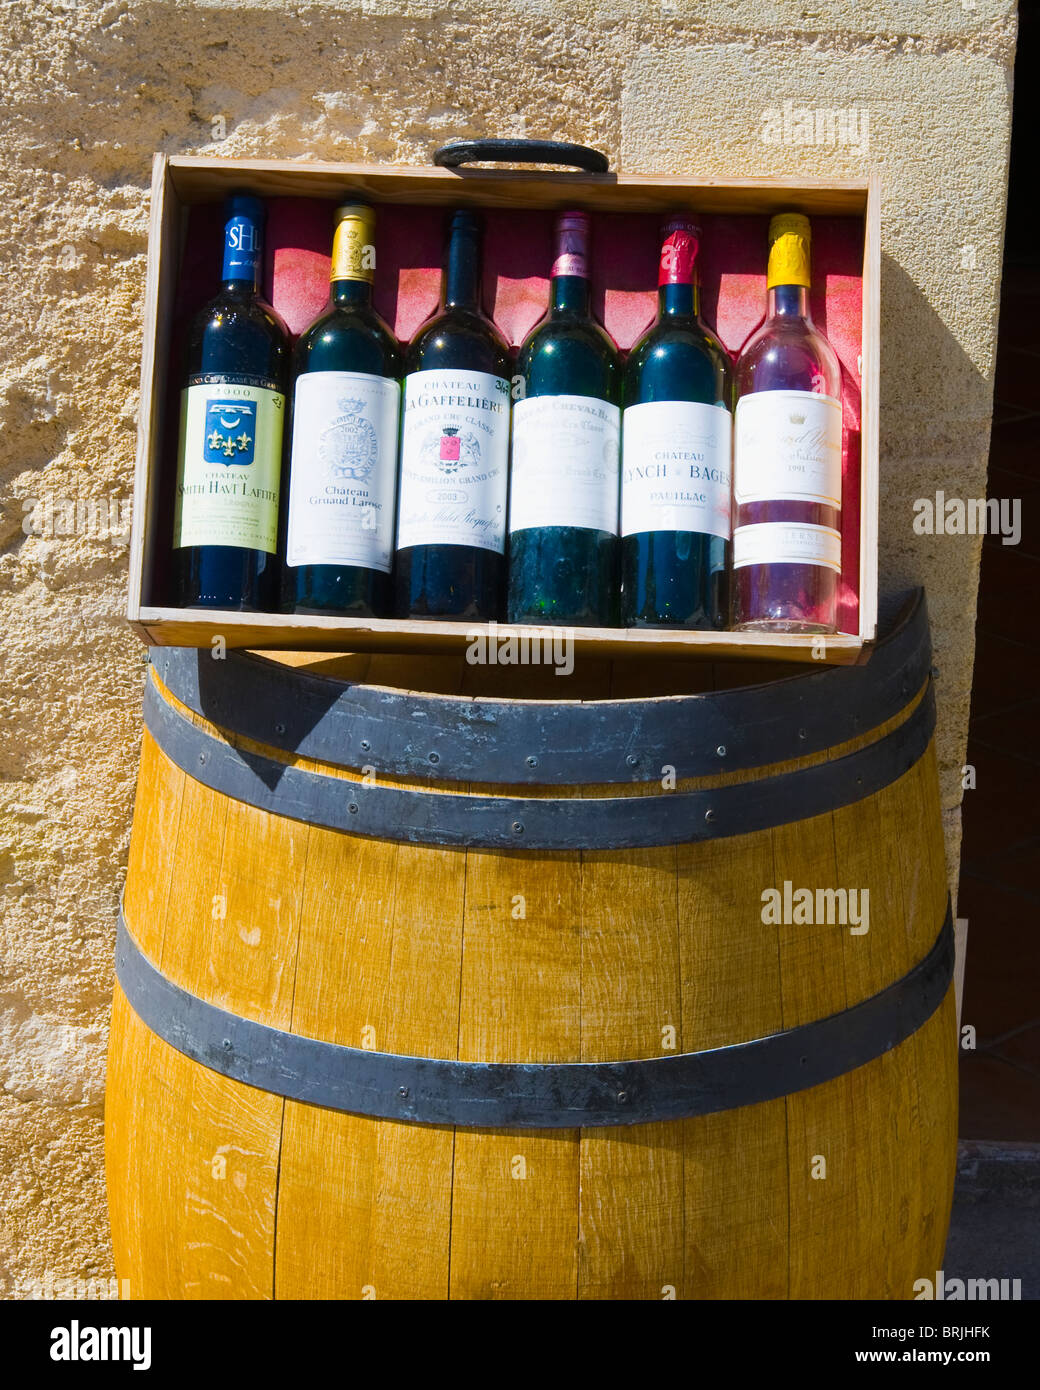 Wine Bottles, Saint Emilion, Aquitaine, France Stock Photo